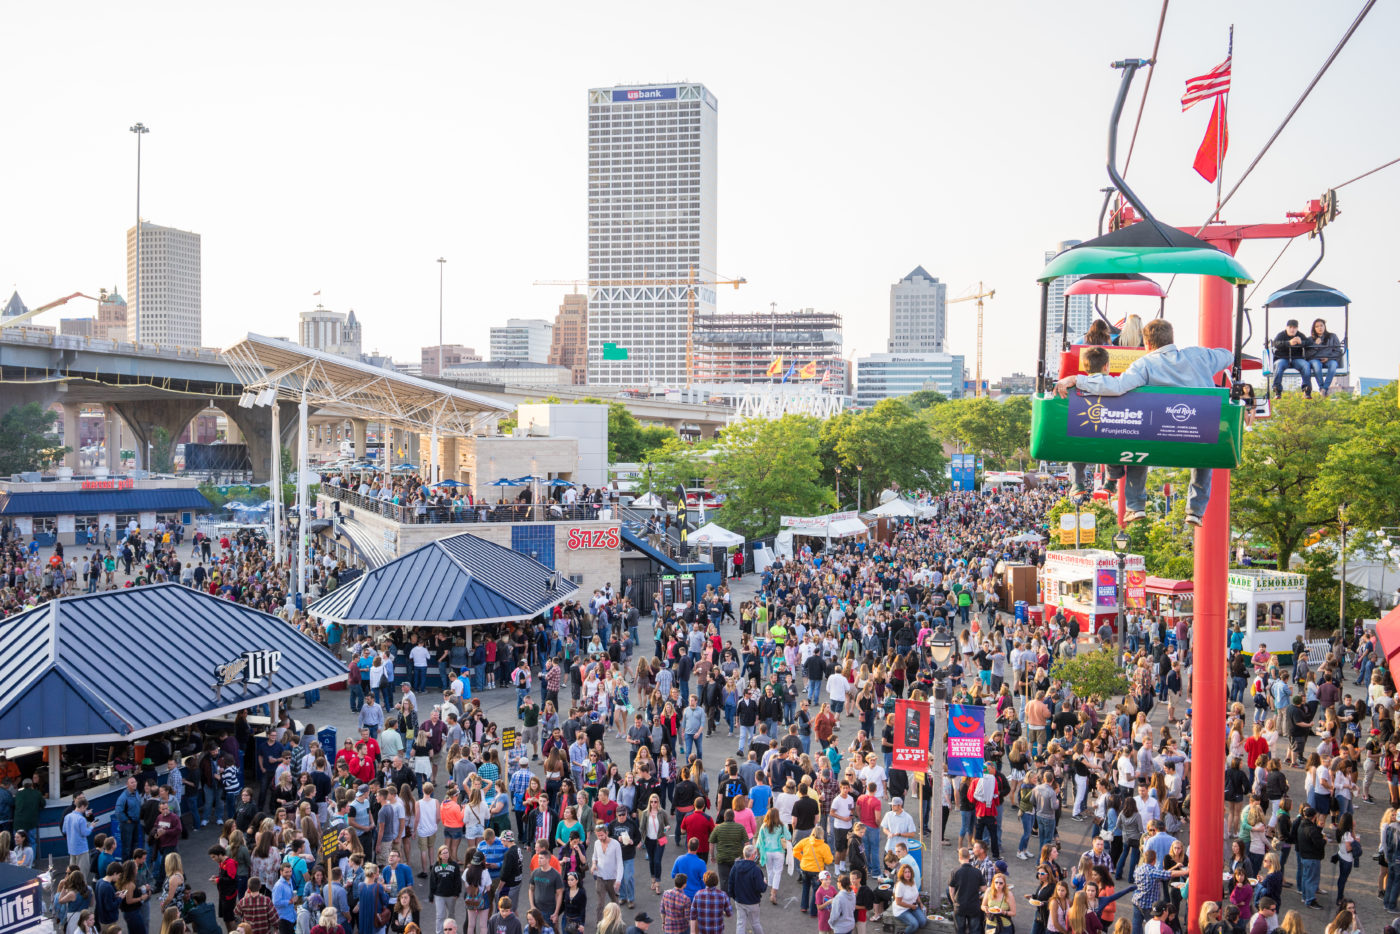 Summerfest will move to September